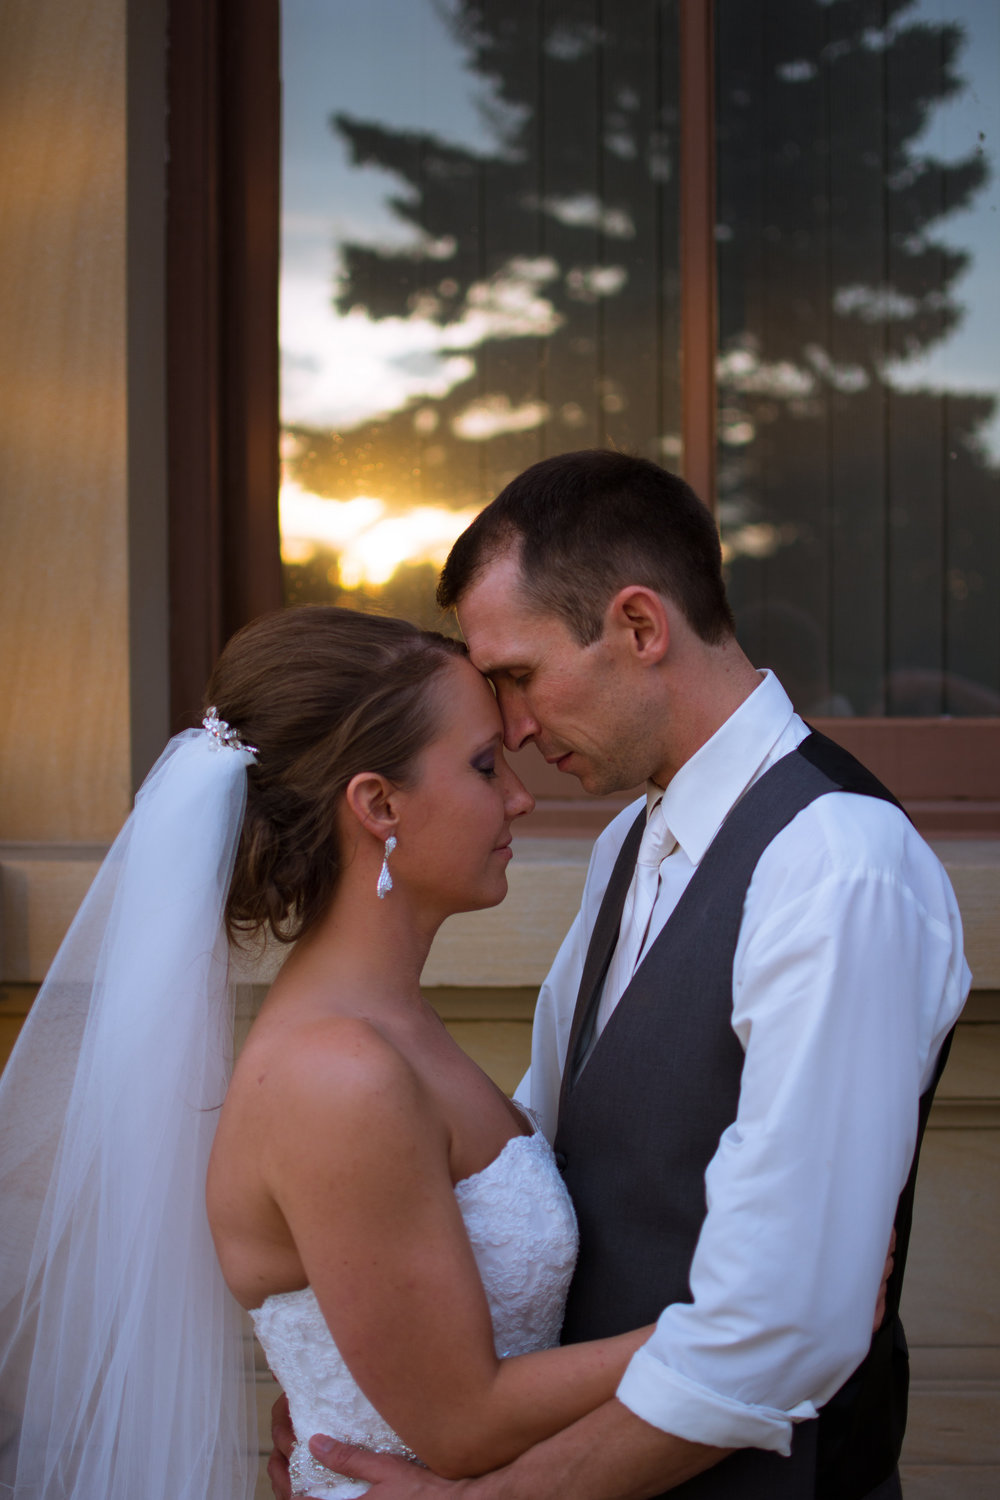 leann_sol_wedding (470 of 602).jpg